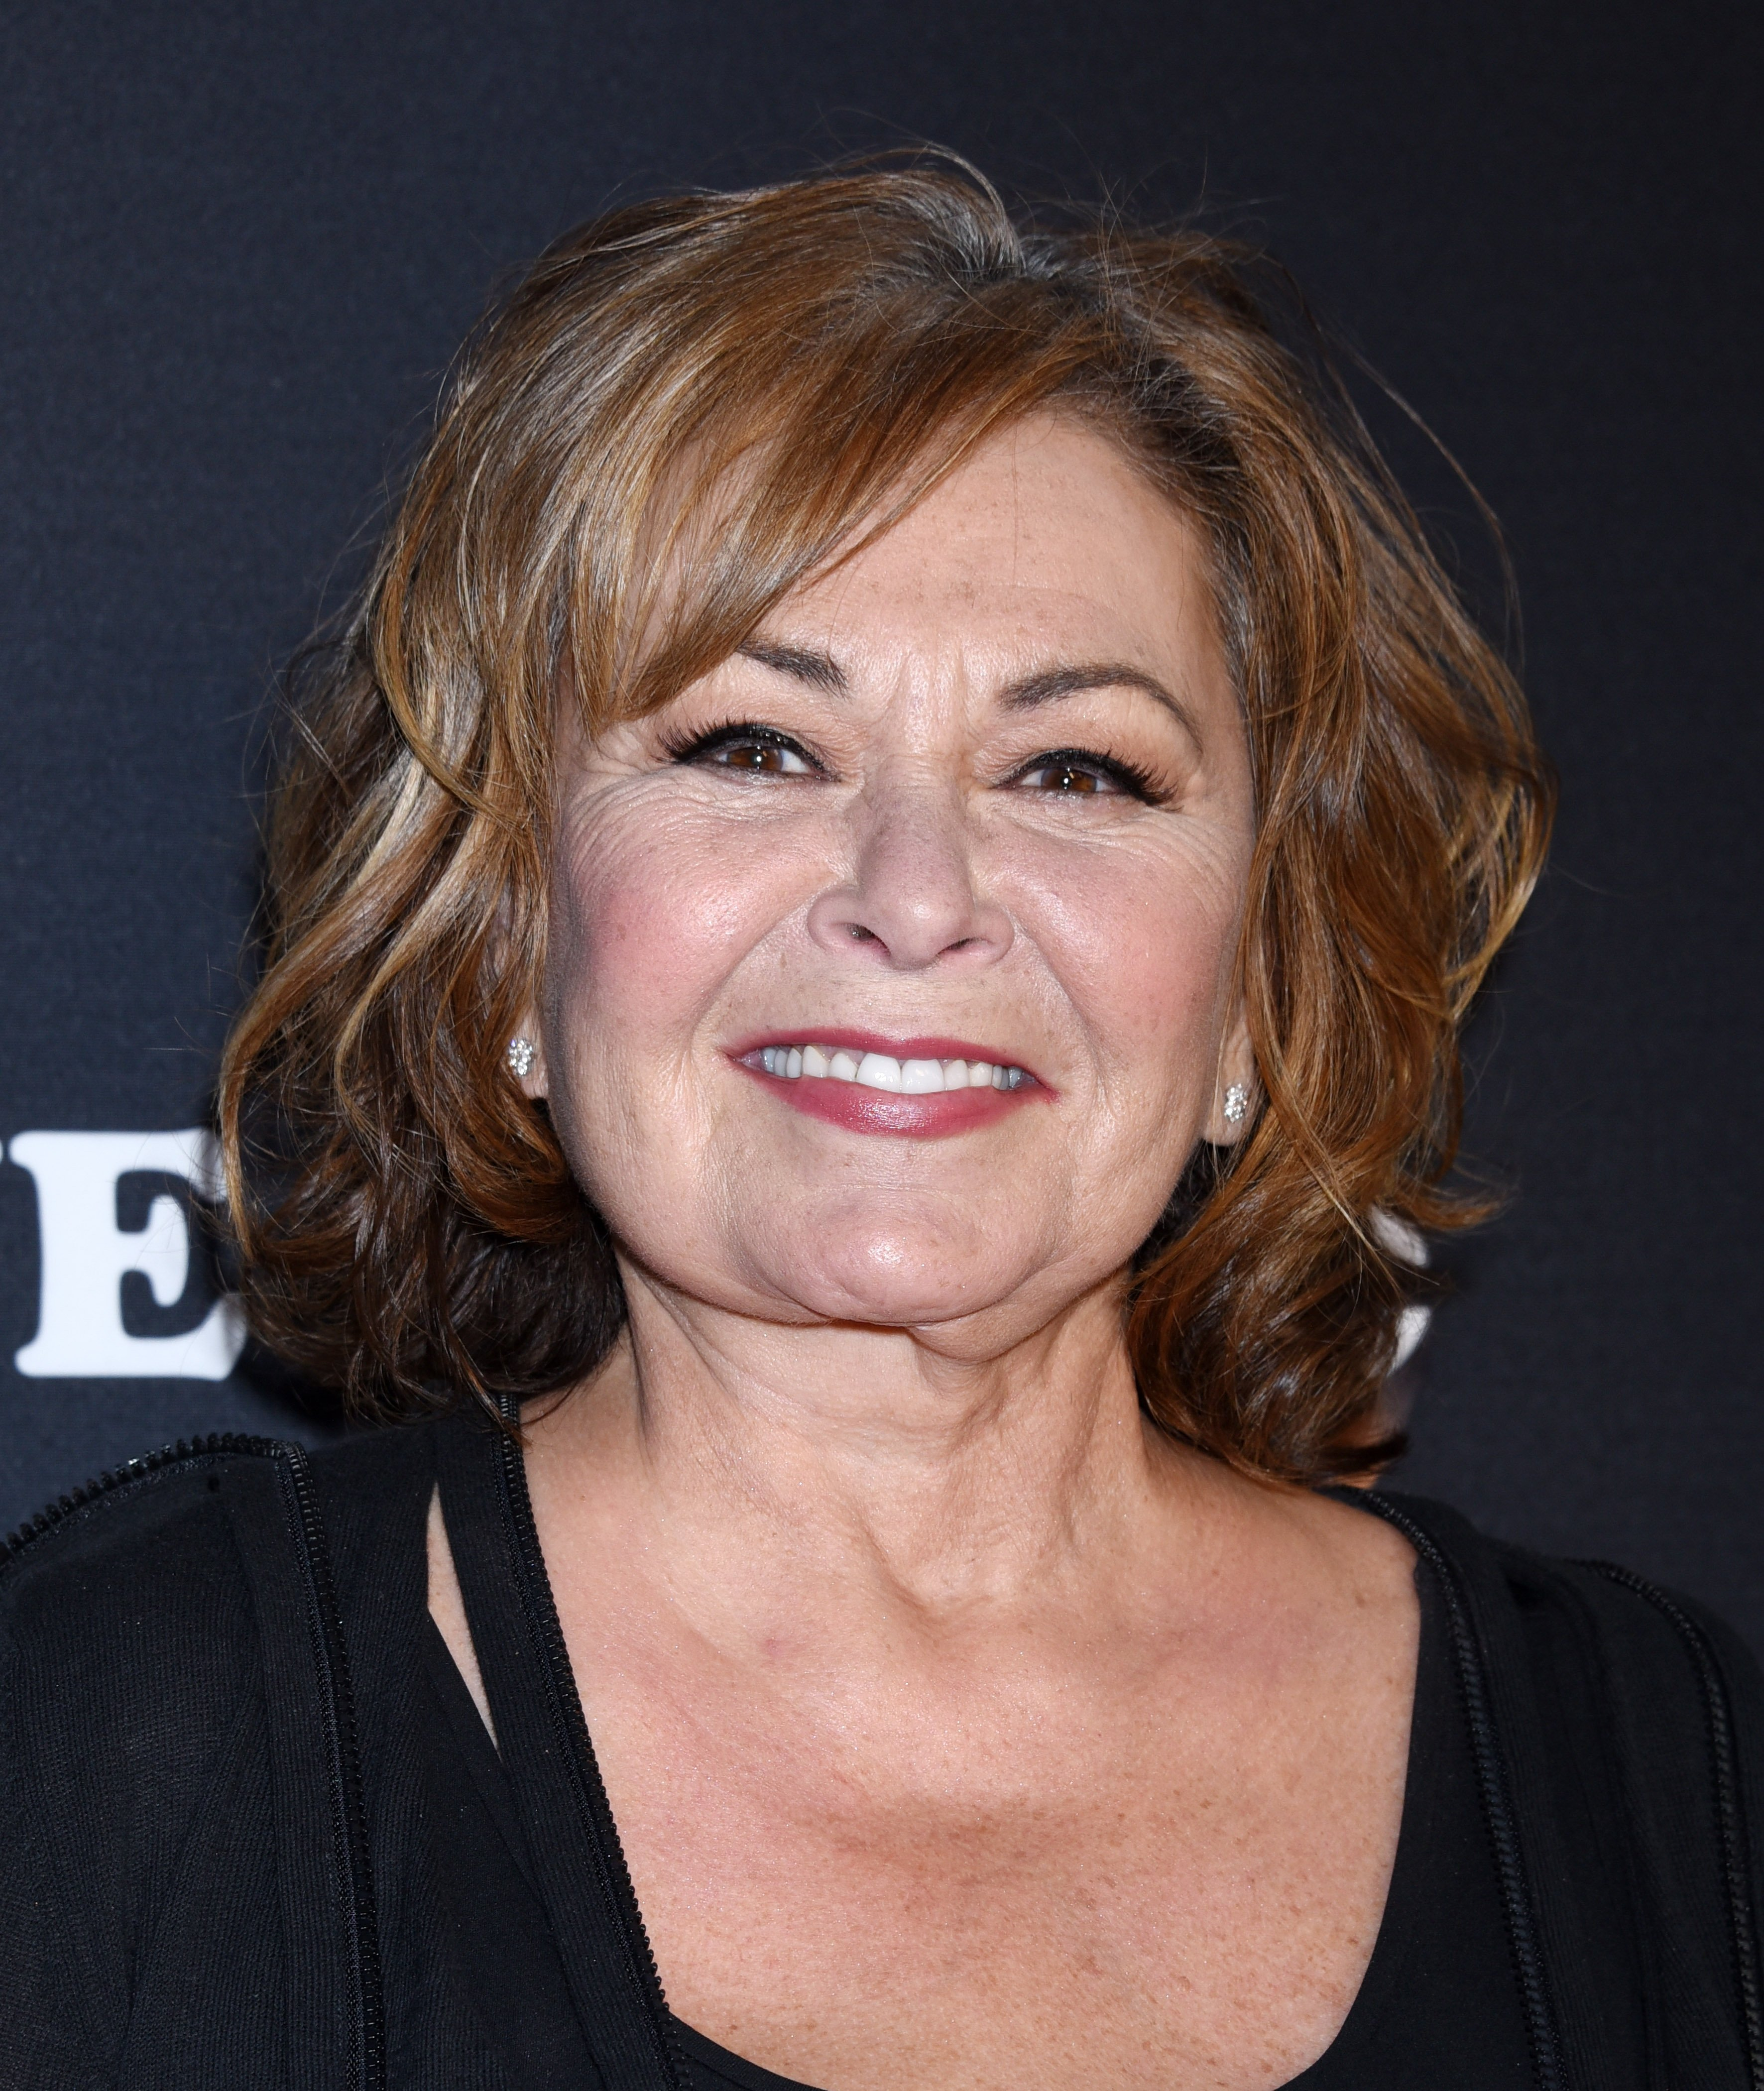 """Roseanne Barr arrives to the """"Roseanne"""" series premiere event on March 23, 2018 in Burbank, California 